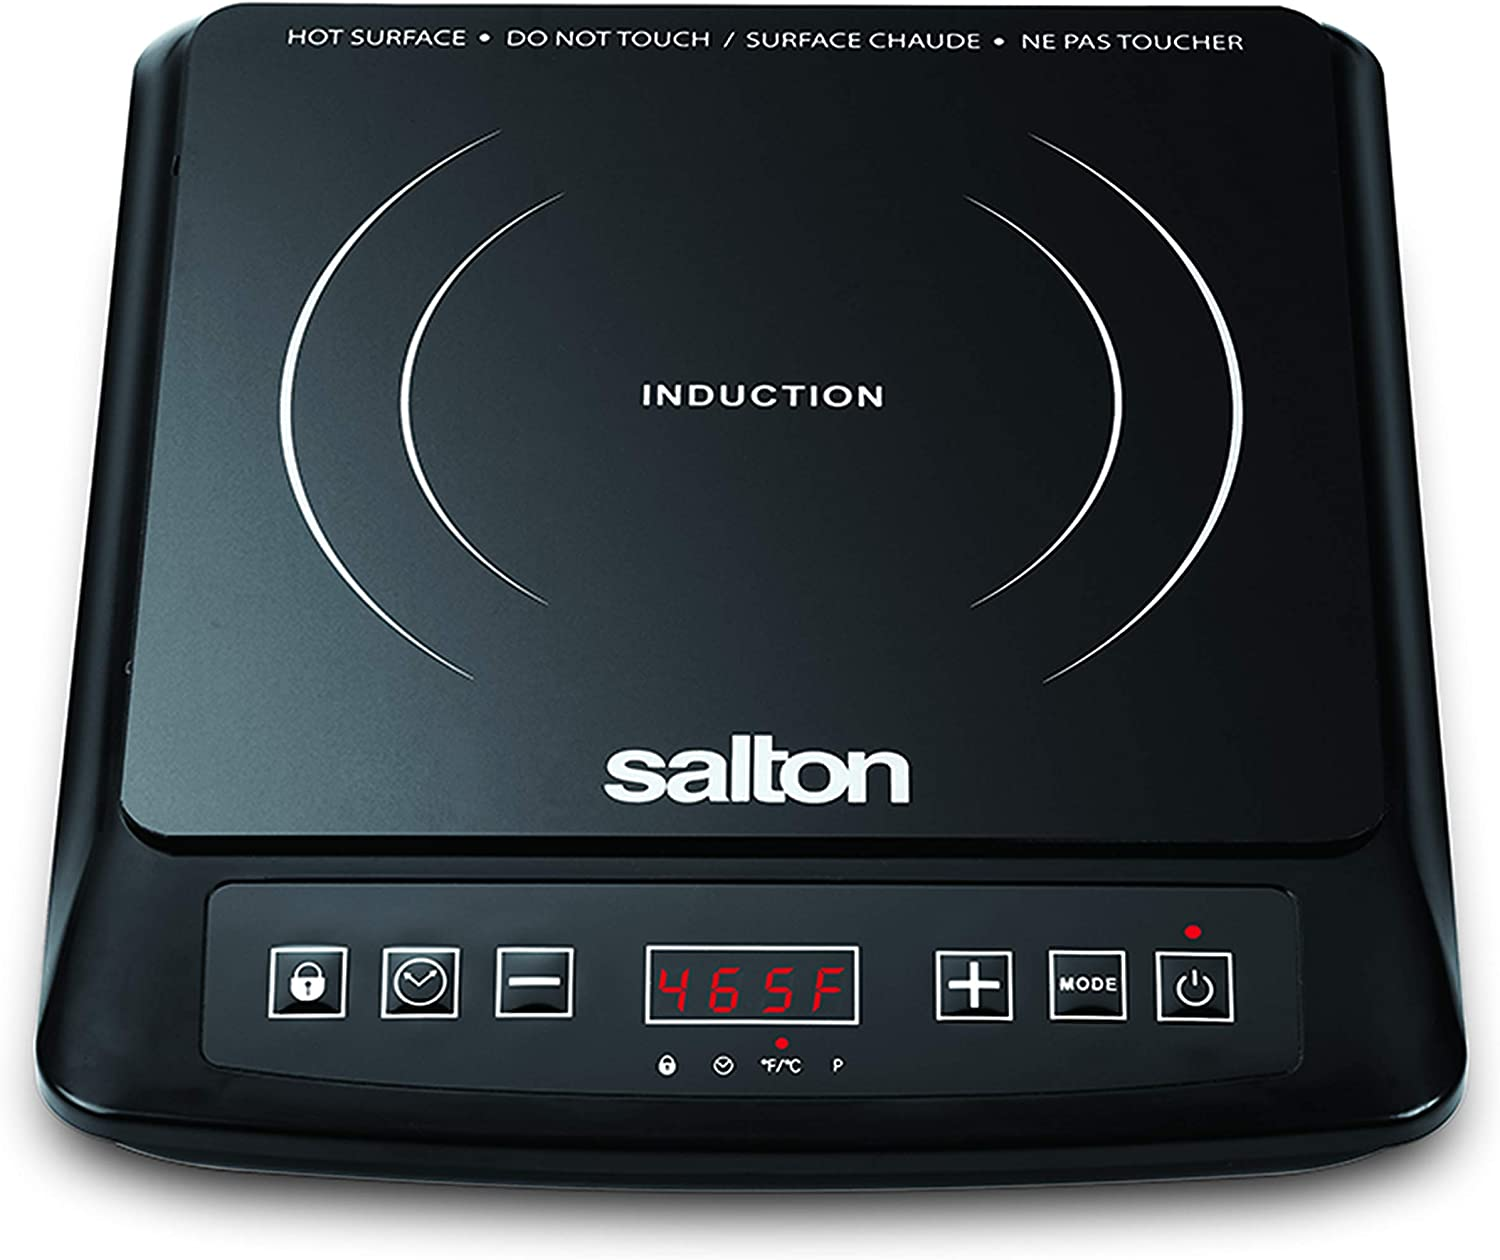 Salton Portable Induction Cooktop Cool Touch LED Display Cooker with 8 Temperature Settings for Precise Control, Energy Efficient Green Cooking with Magnet Induction Tester Included, 1500 Watts (ID1948)